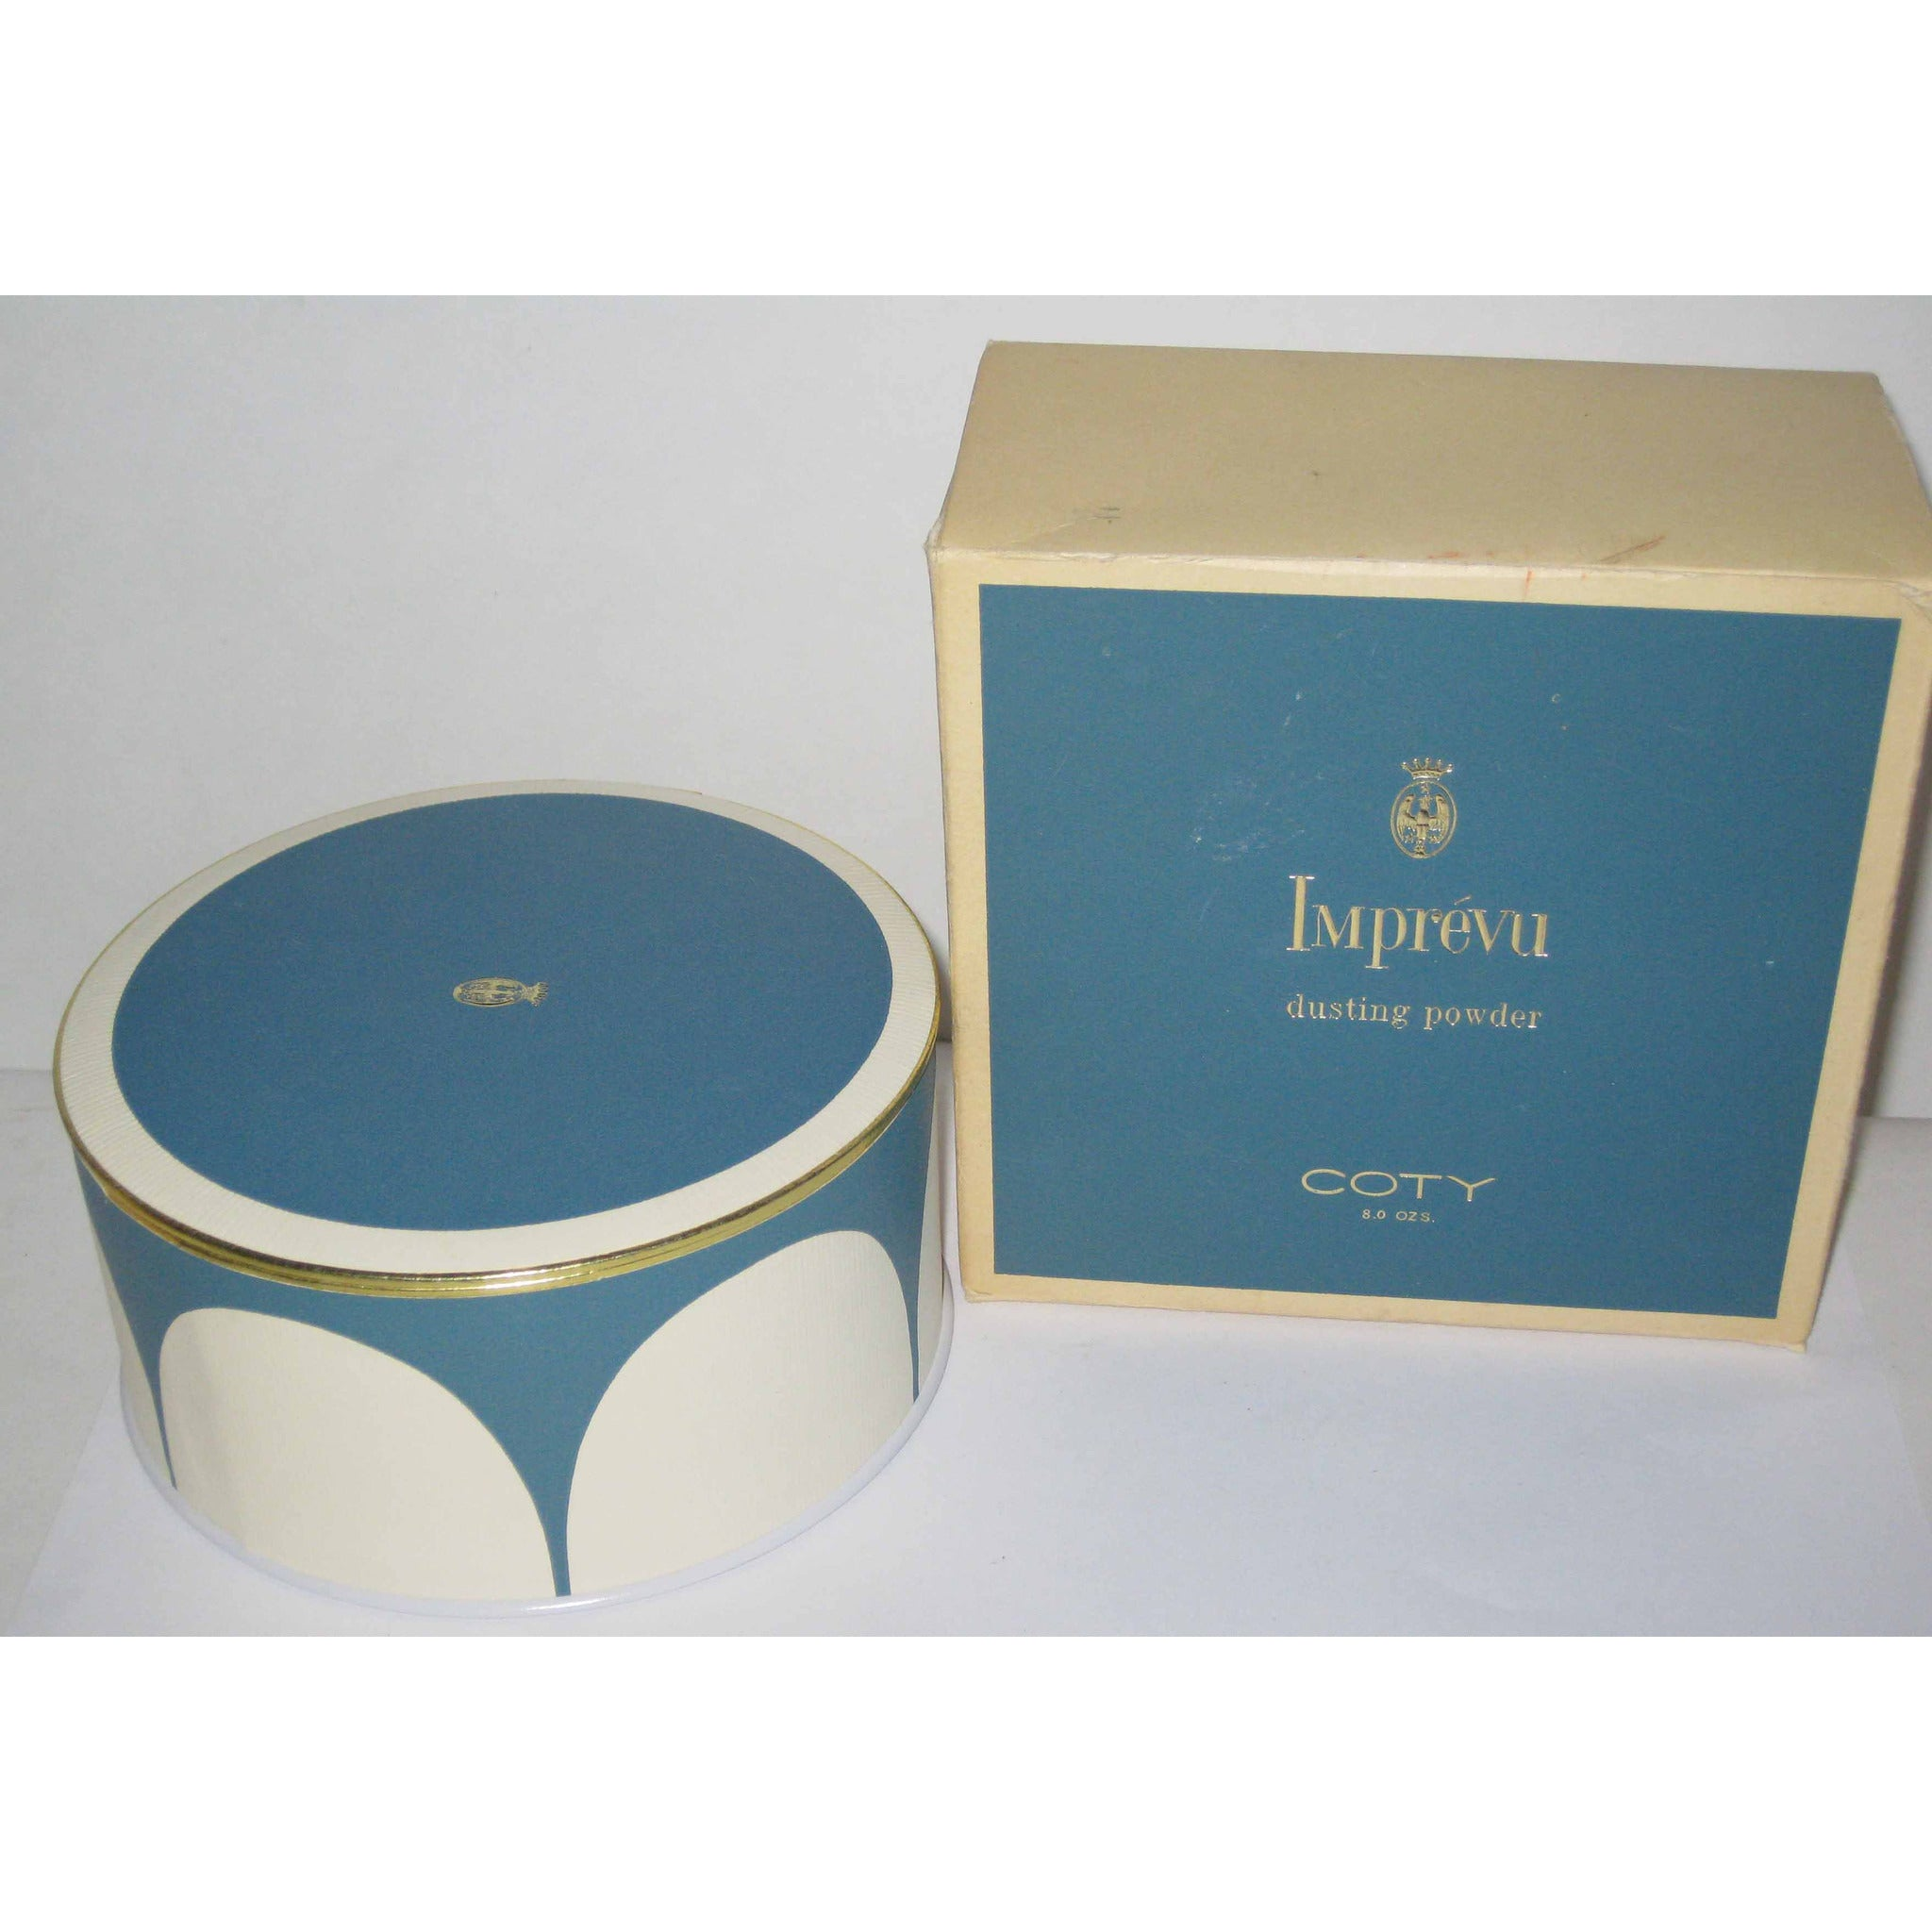 Vintage Imprevu Dusting Powder By Coty